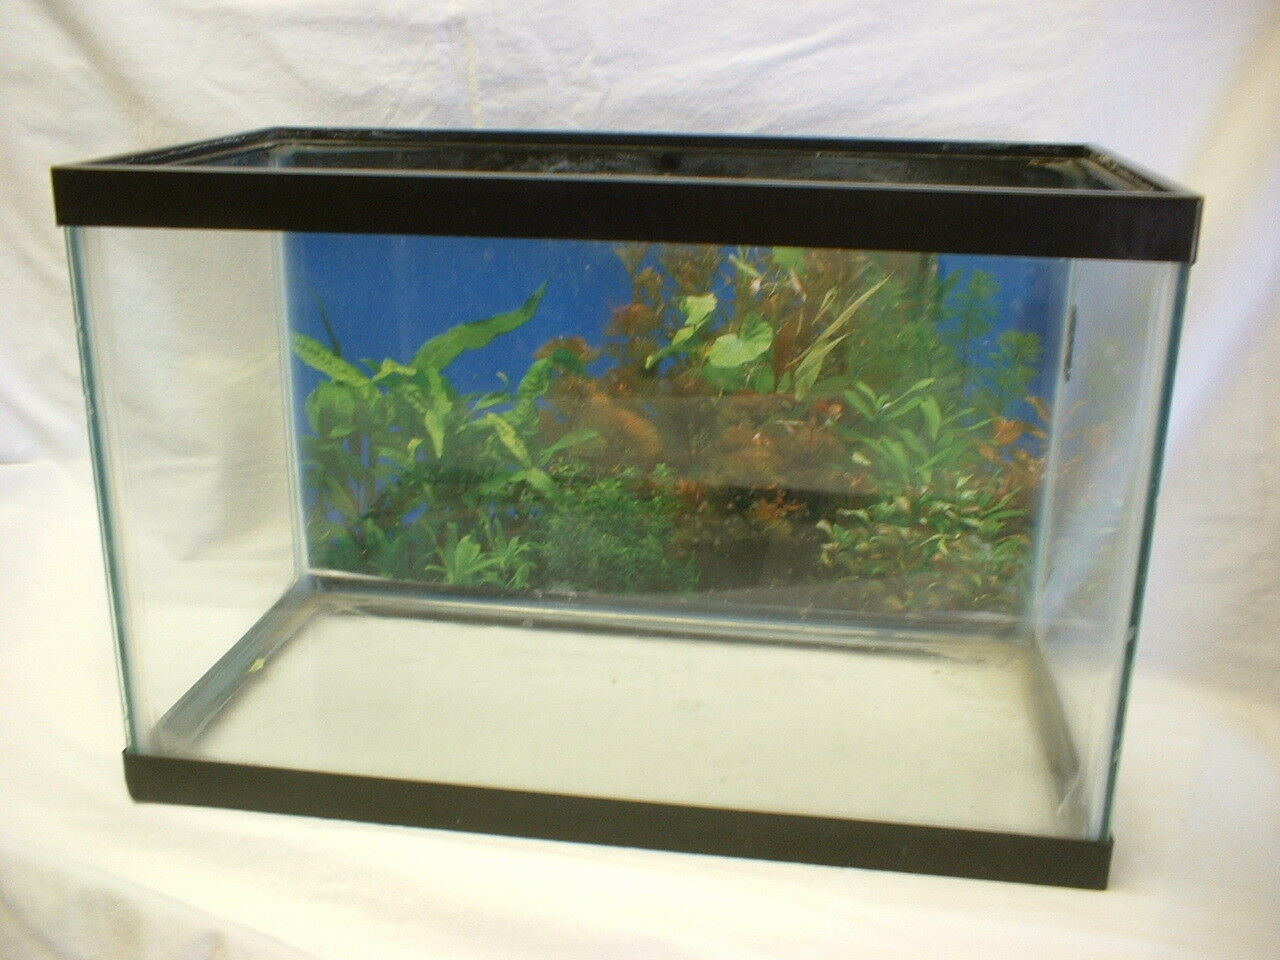 5 1 2 Gallon Glass Aquarium, Used